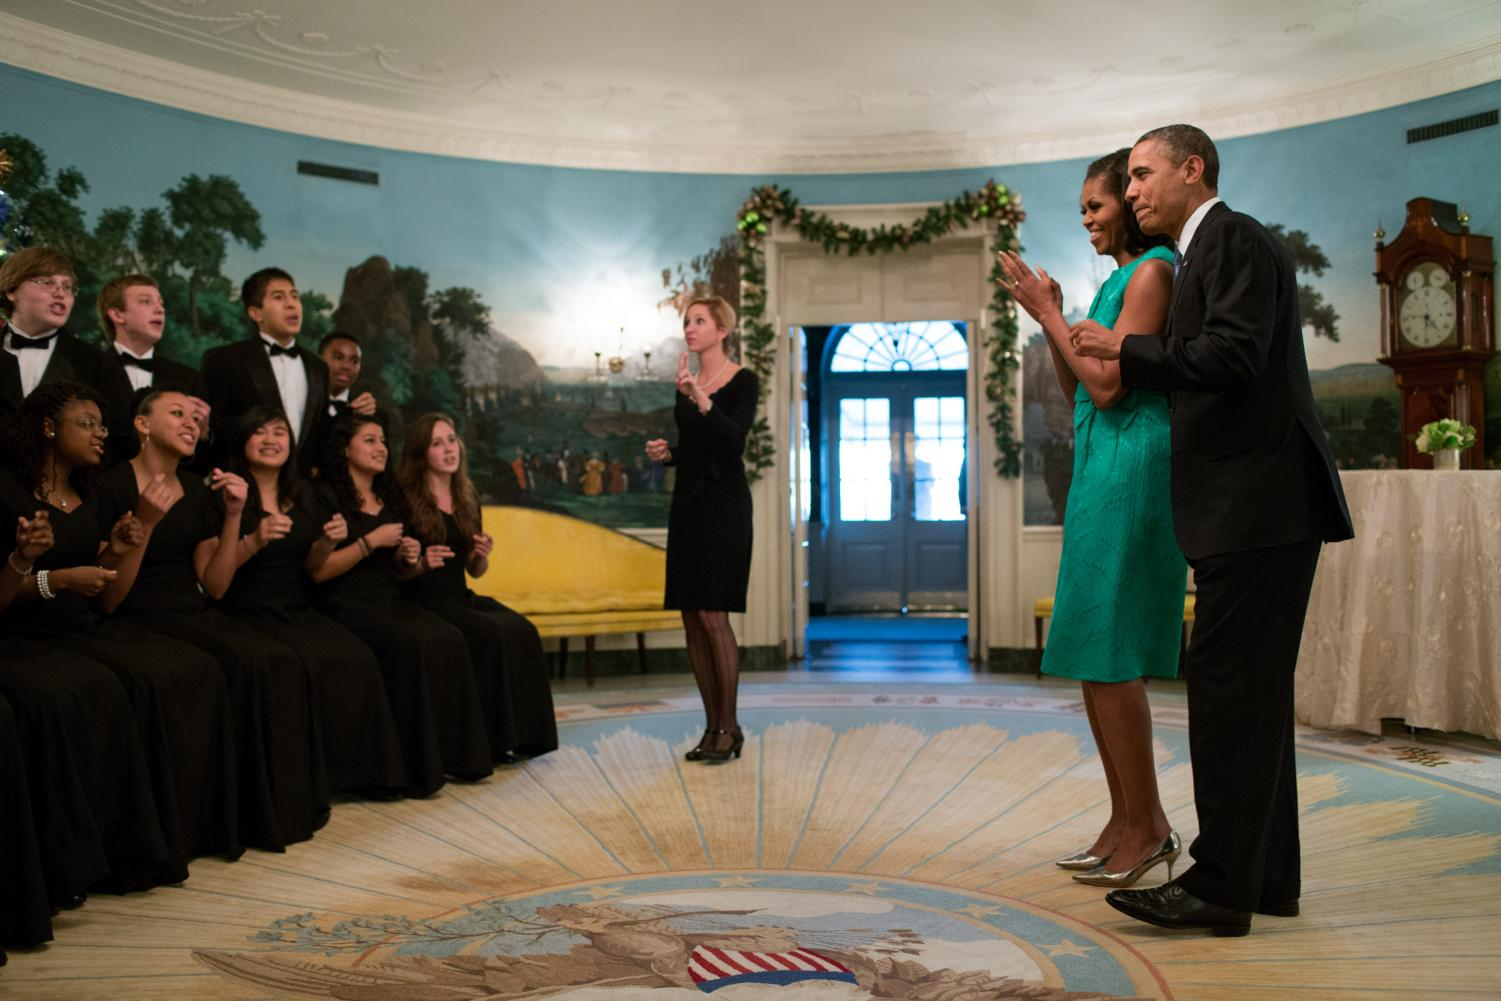 Michelle Searle Kim conducts her Seneca Valley choral students in a performance at a private holiday party at the White House. Next year, Kim will replace Jeffrey Davidson as Whitman's choral director.